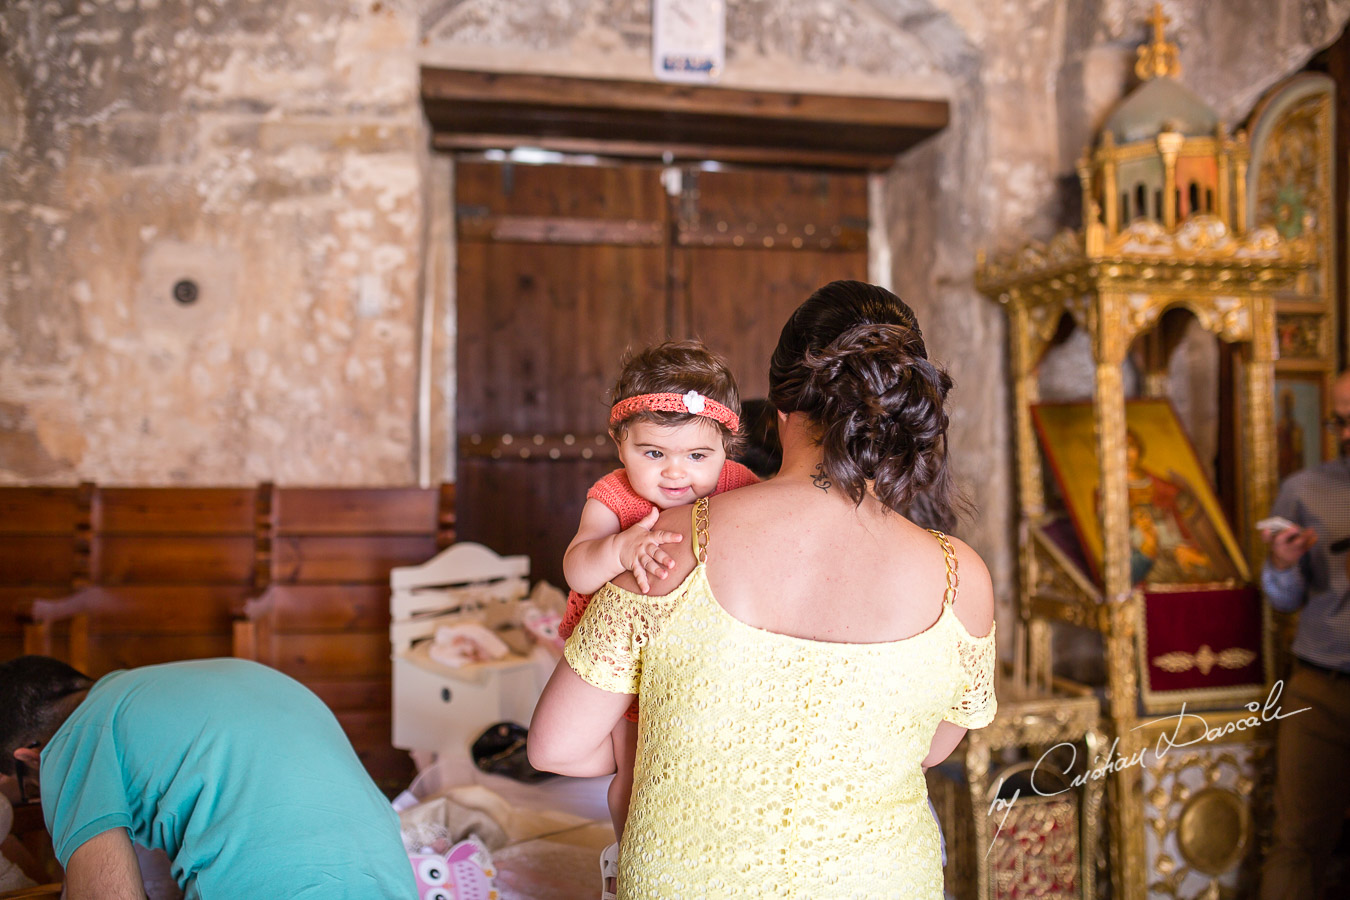 Joyous Christening in Limassol - 12